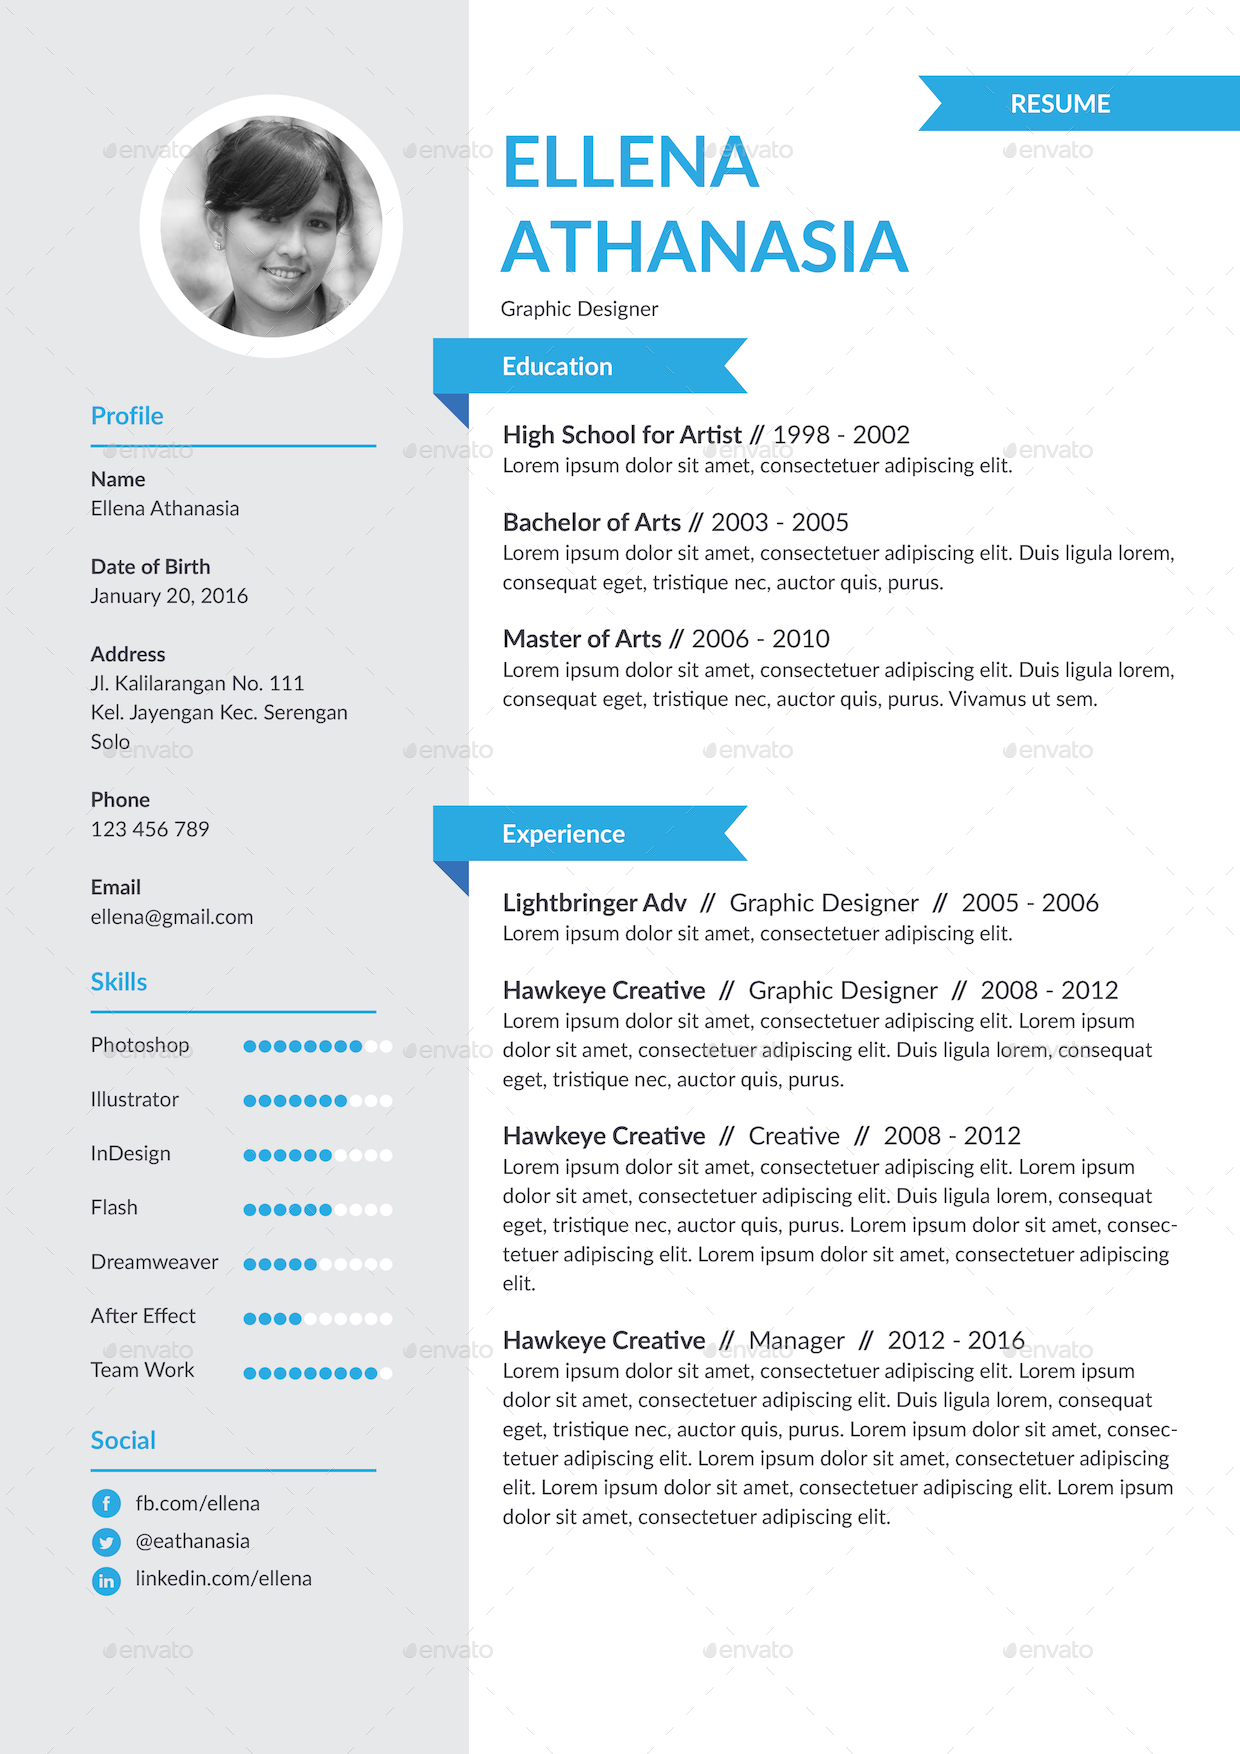 resume Resume Personality personality resume template by hermeneutic graphicriver image light jpeg